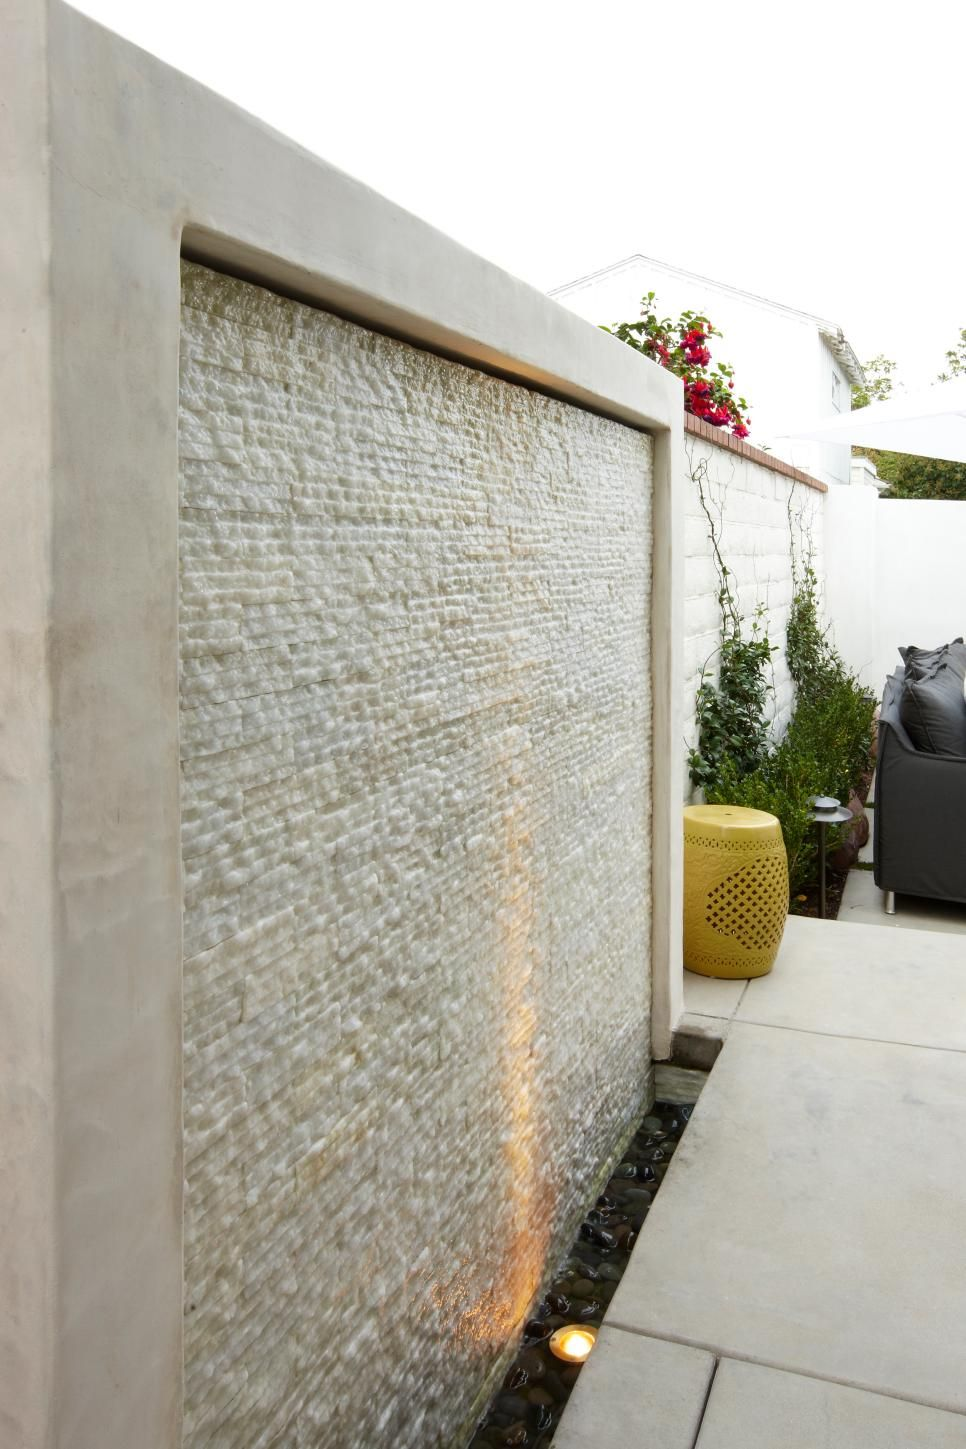 Home Water Feature Wall Backyard Water Feature Water Walls